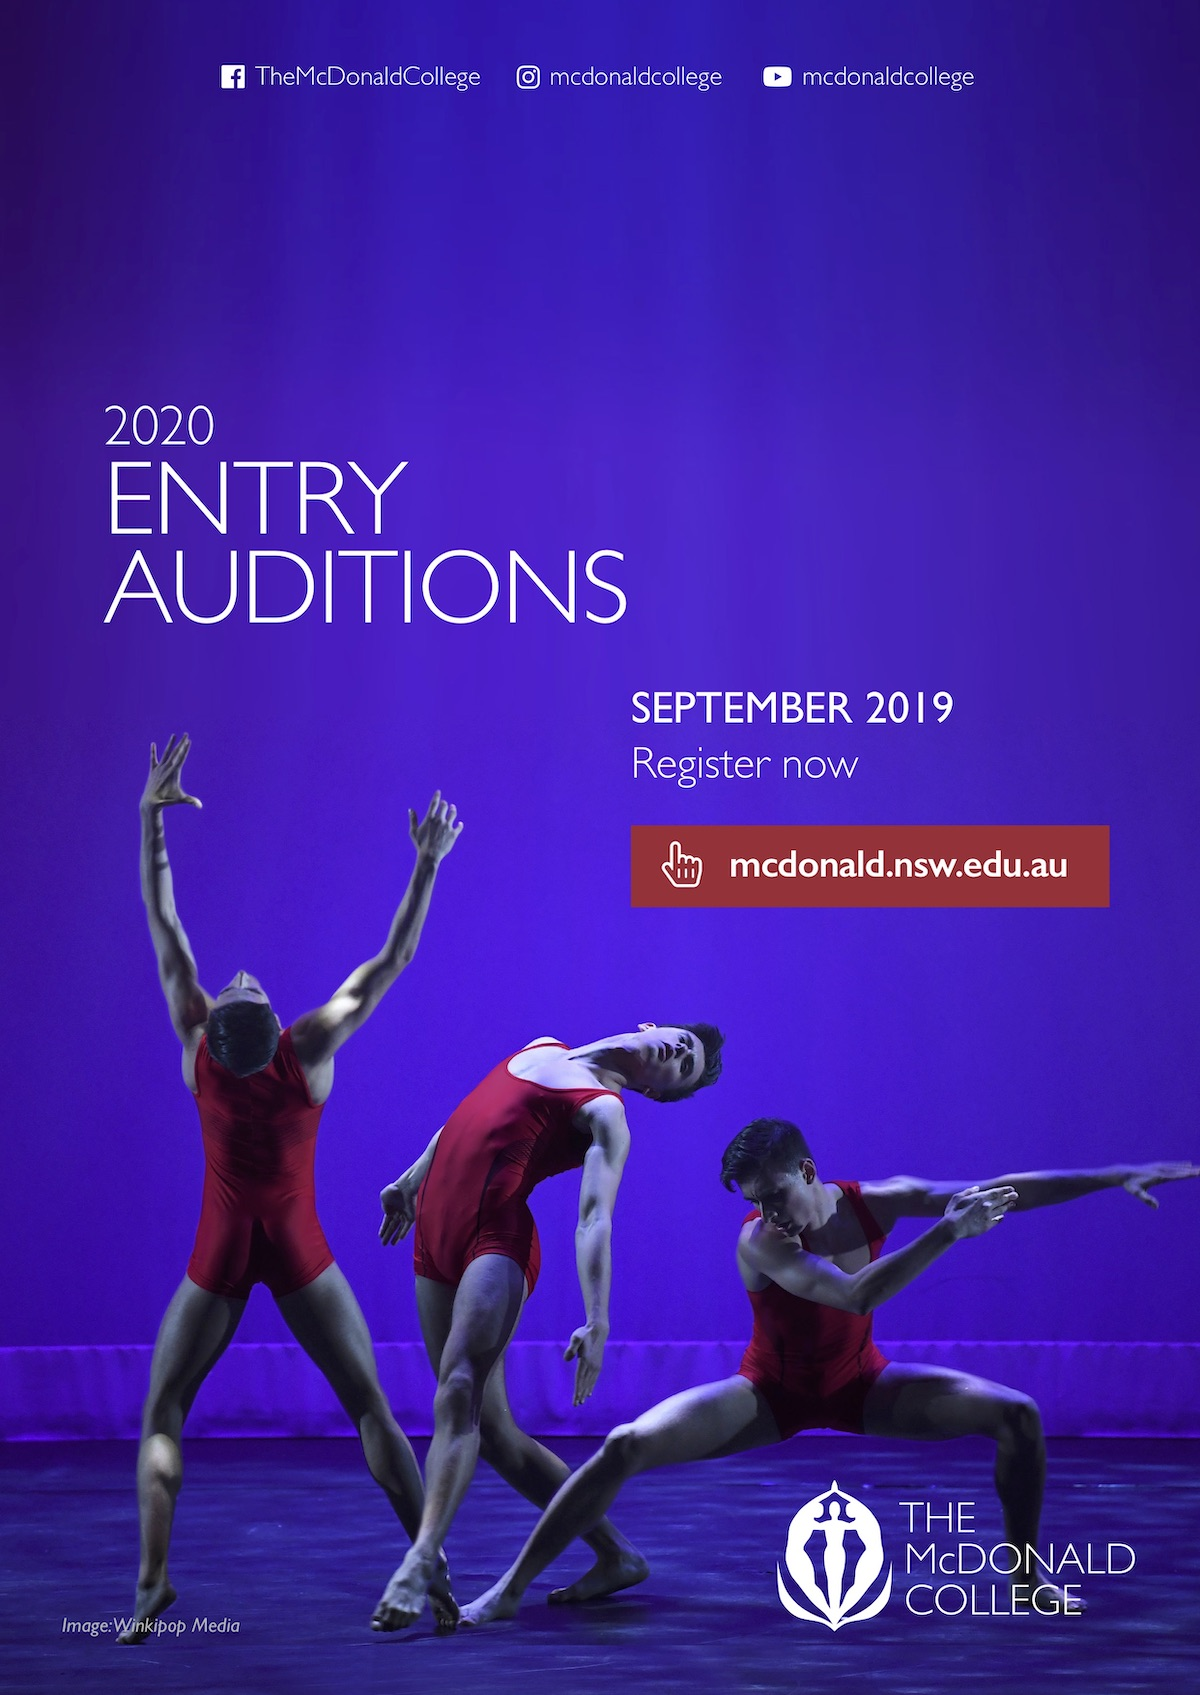 McDonaldCollegeAuditions A4